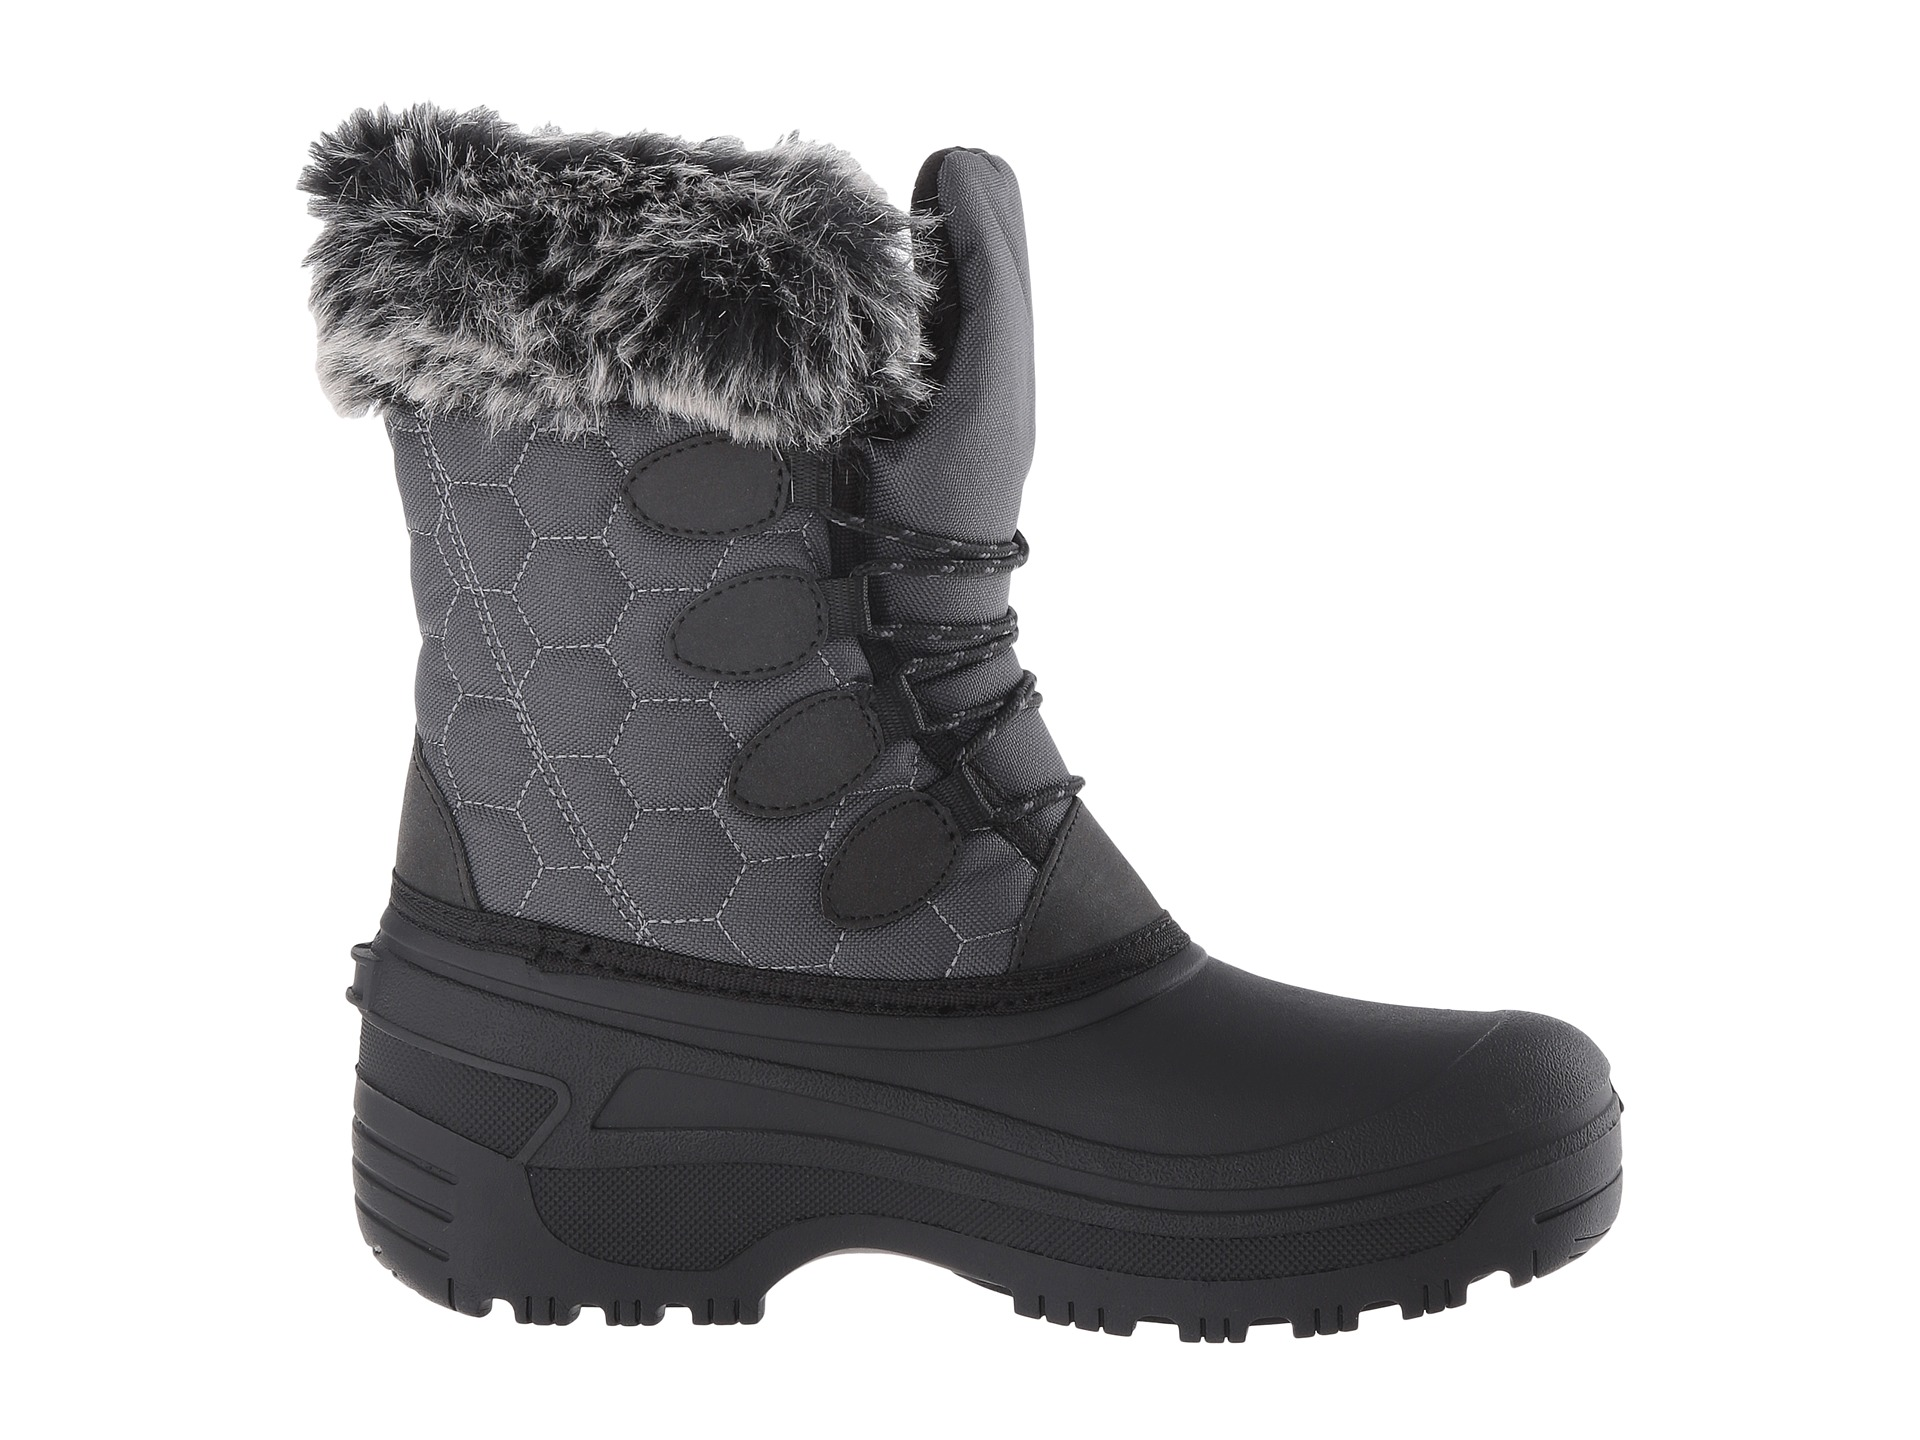 Keen Winter Boots Men Images Decorating Ideas Stylish